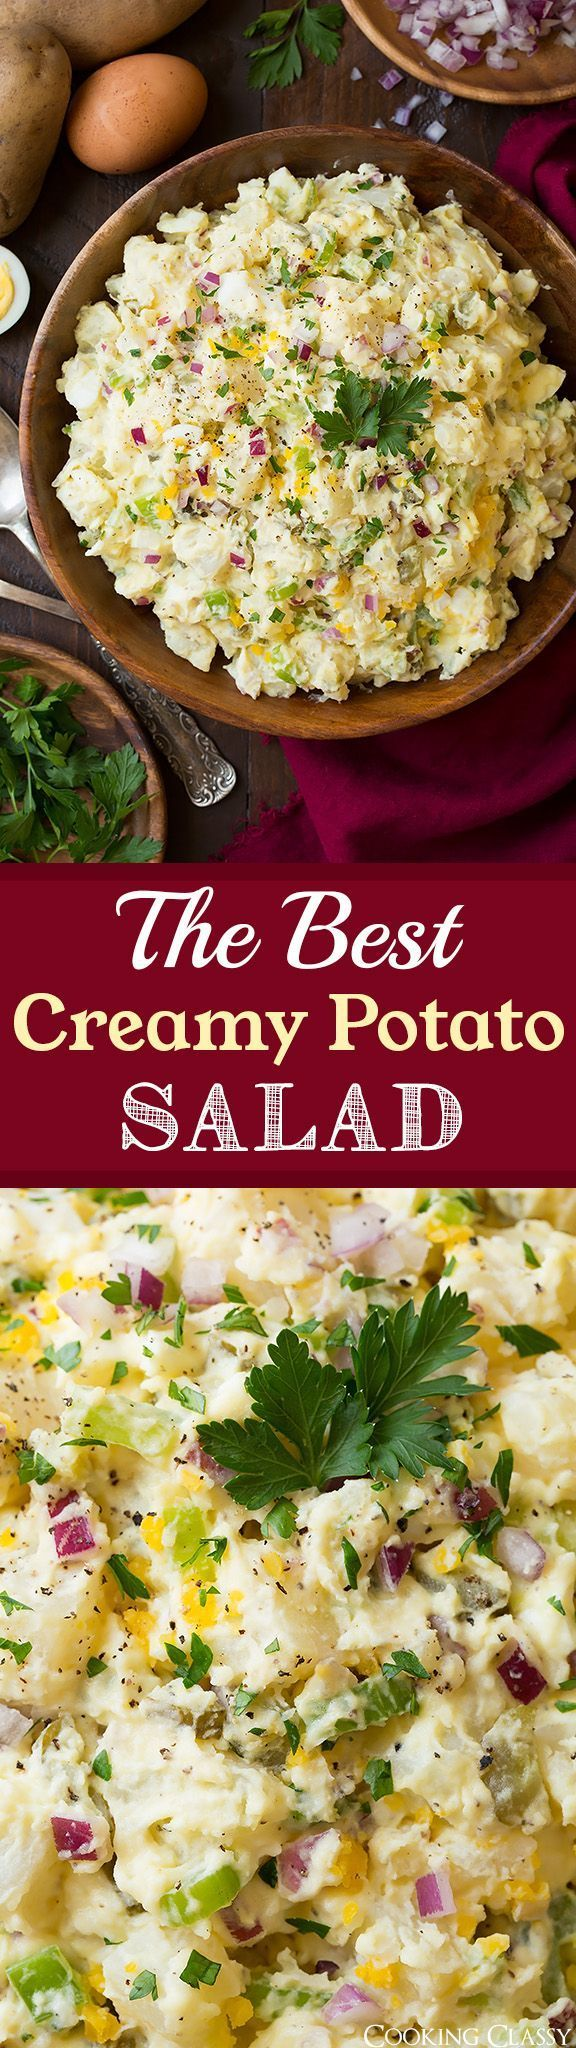 The BEST Creamy Potato Salad! This is my all time favorite recipe for the classic potato salad! A summertime staple.